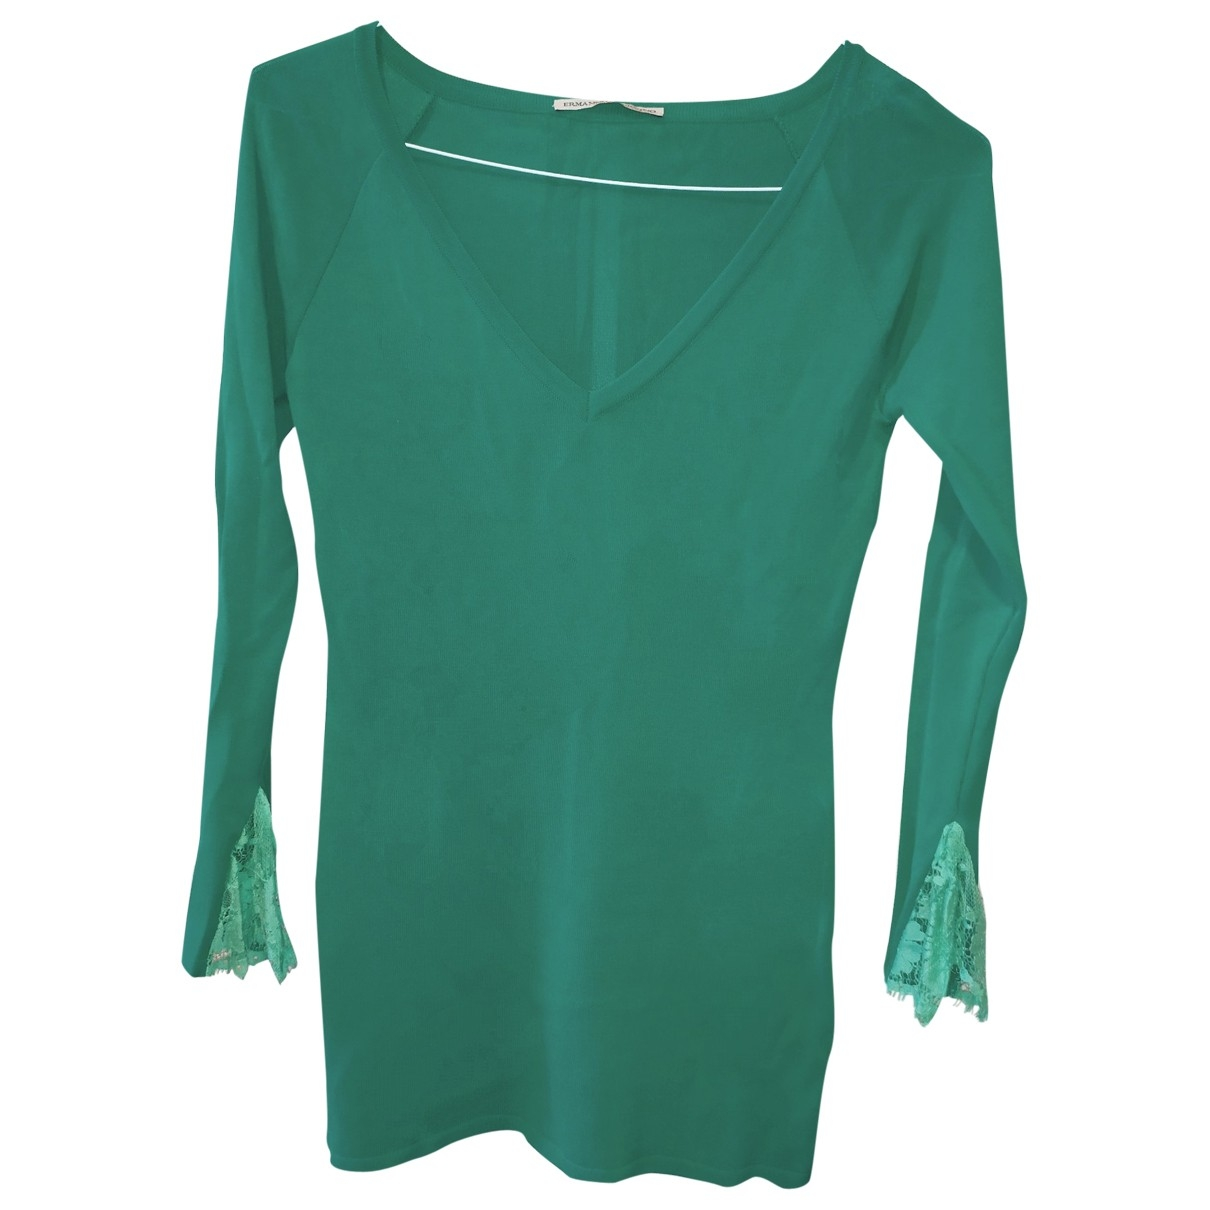 Ermanno Scervino \N Green  top for Women 40 IT